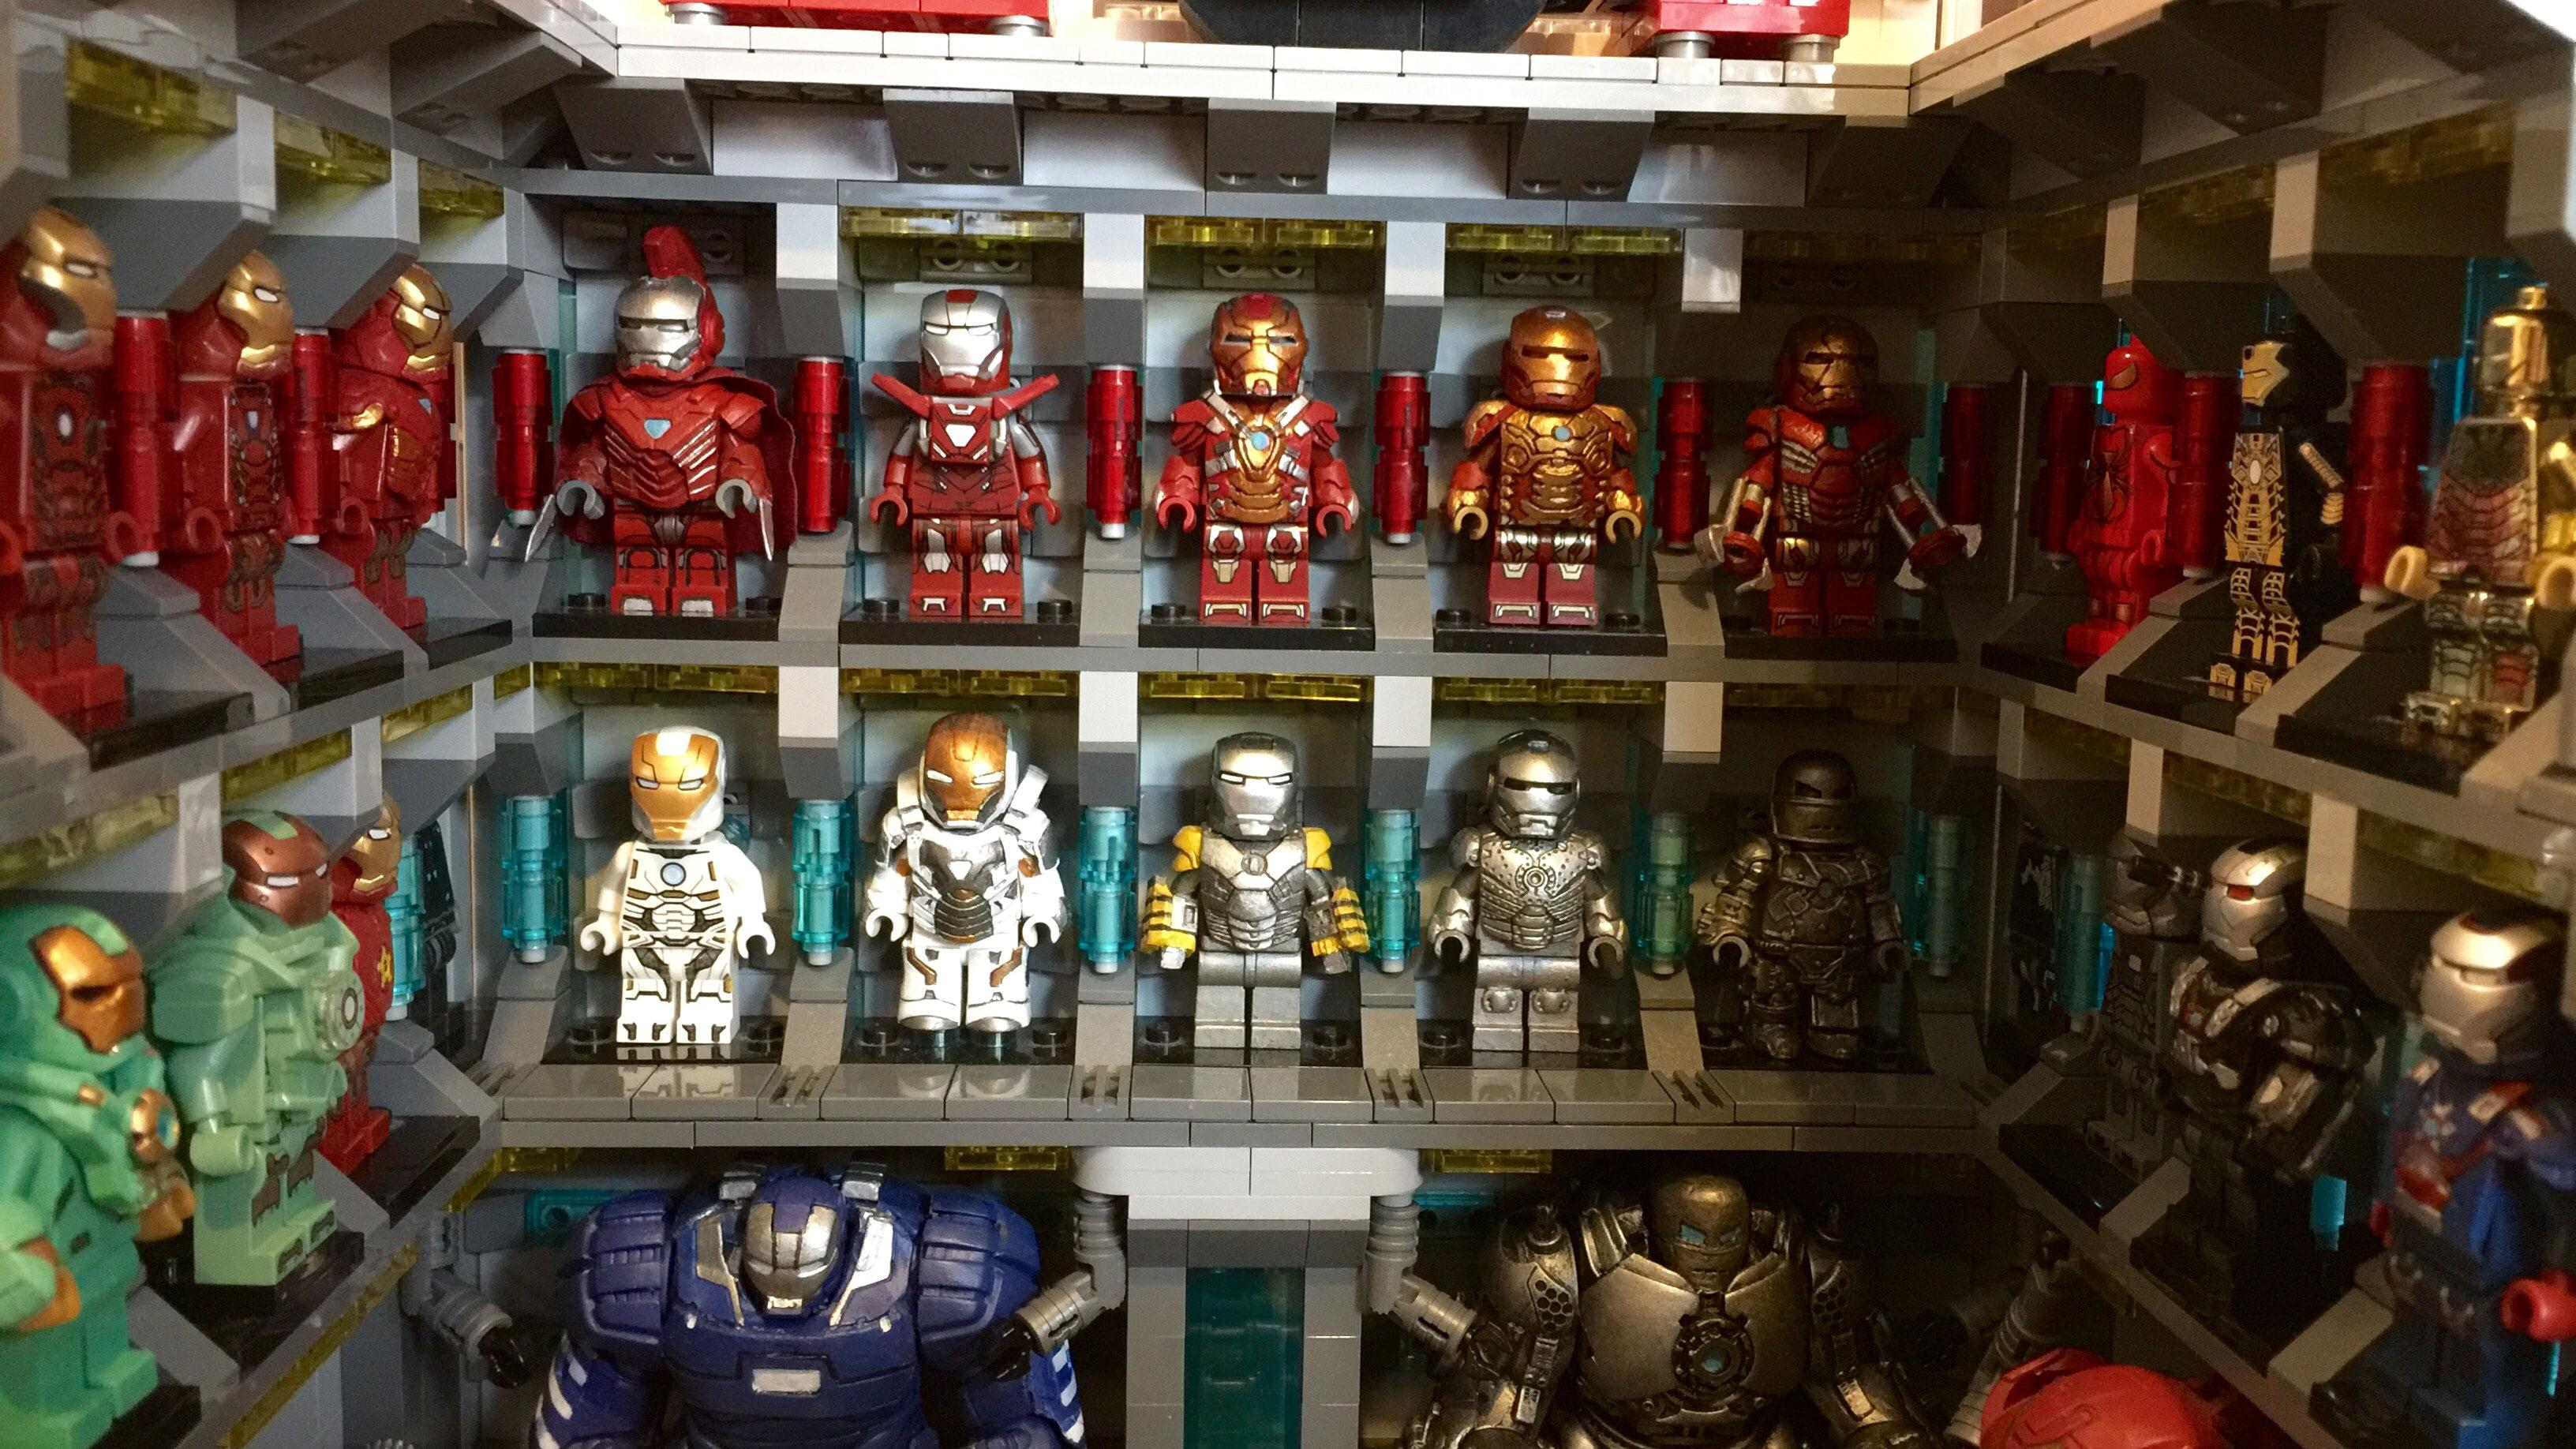 Lego versions of all the Iron Man suits would take so long ...